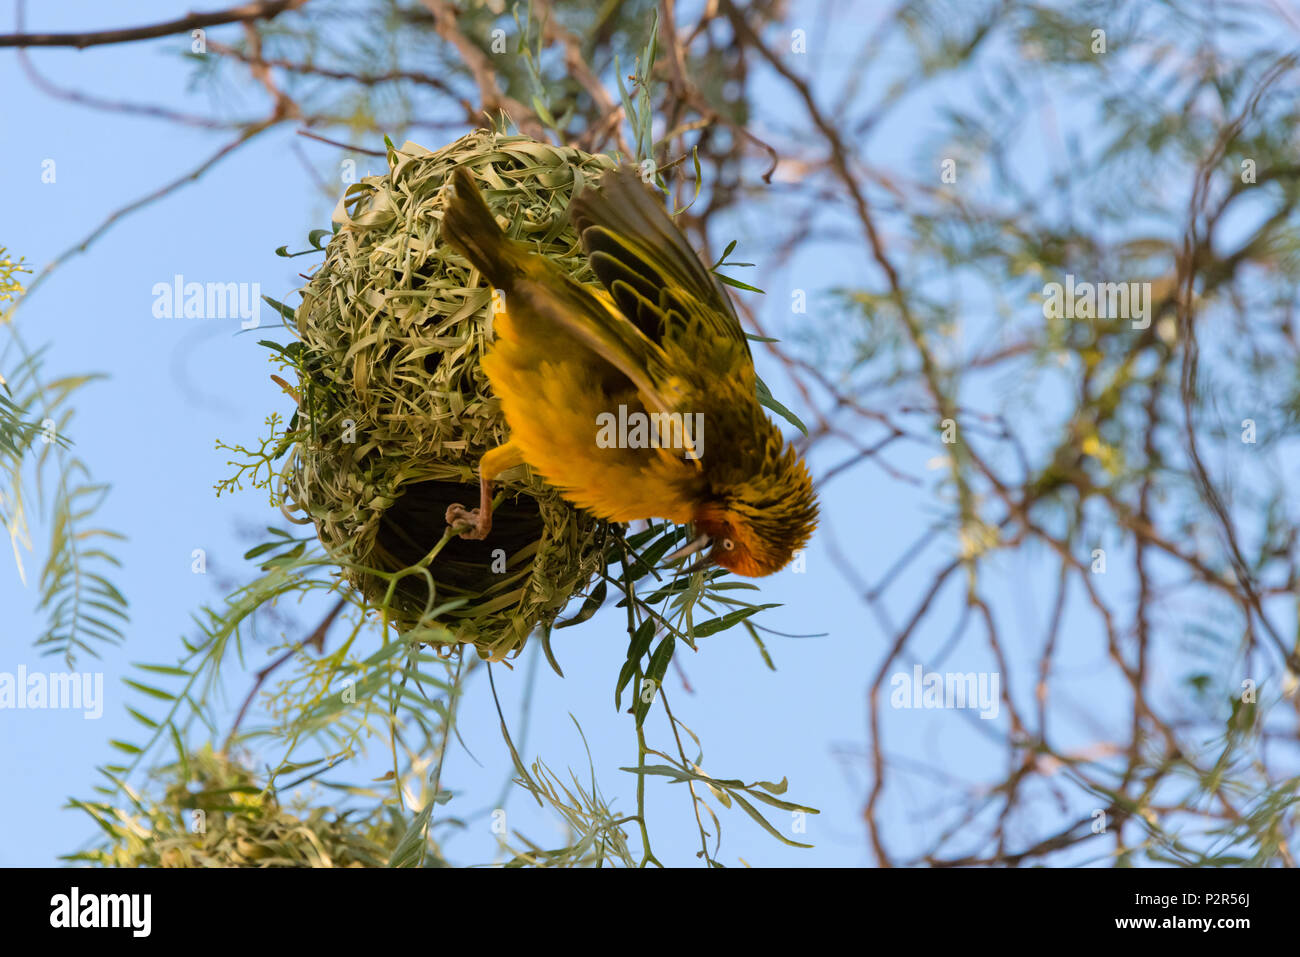 Weaver with nest, Swaziland - Stock Image